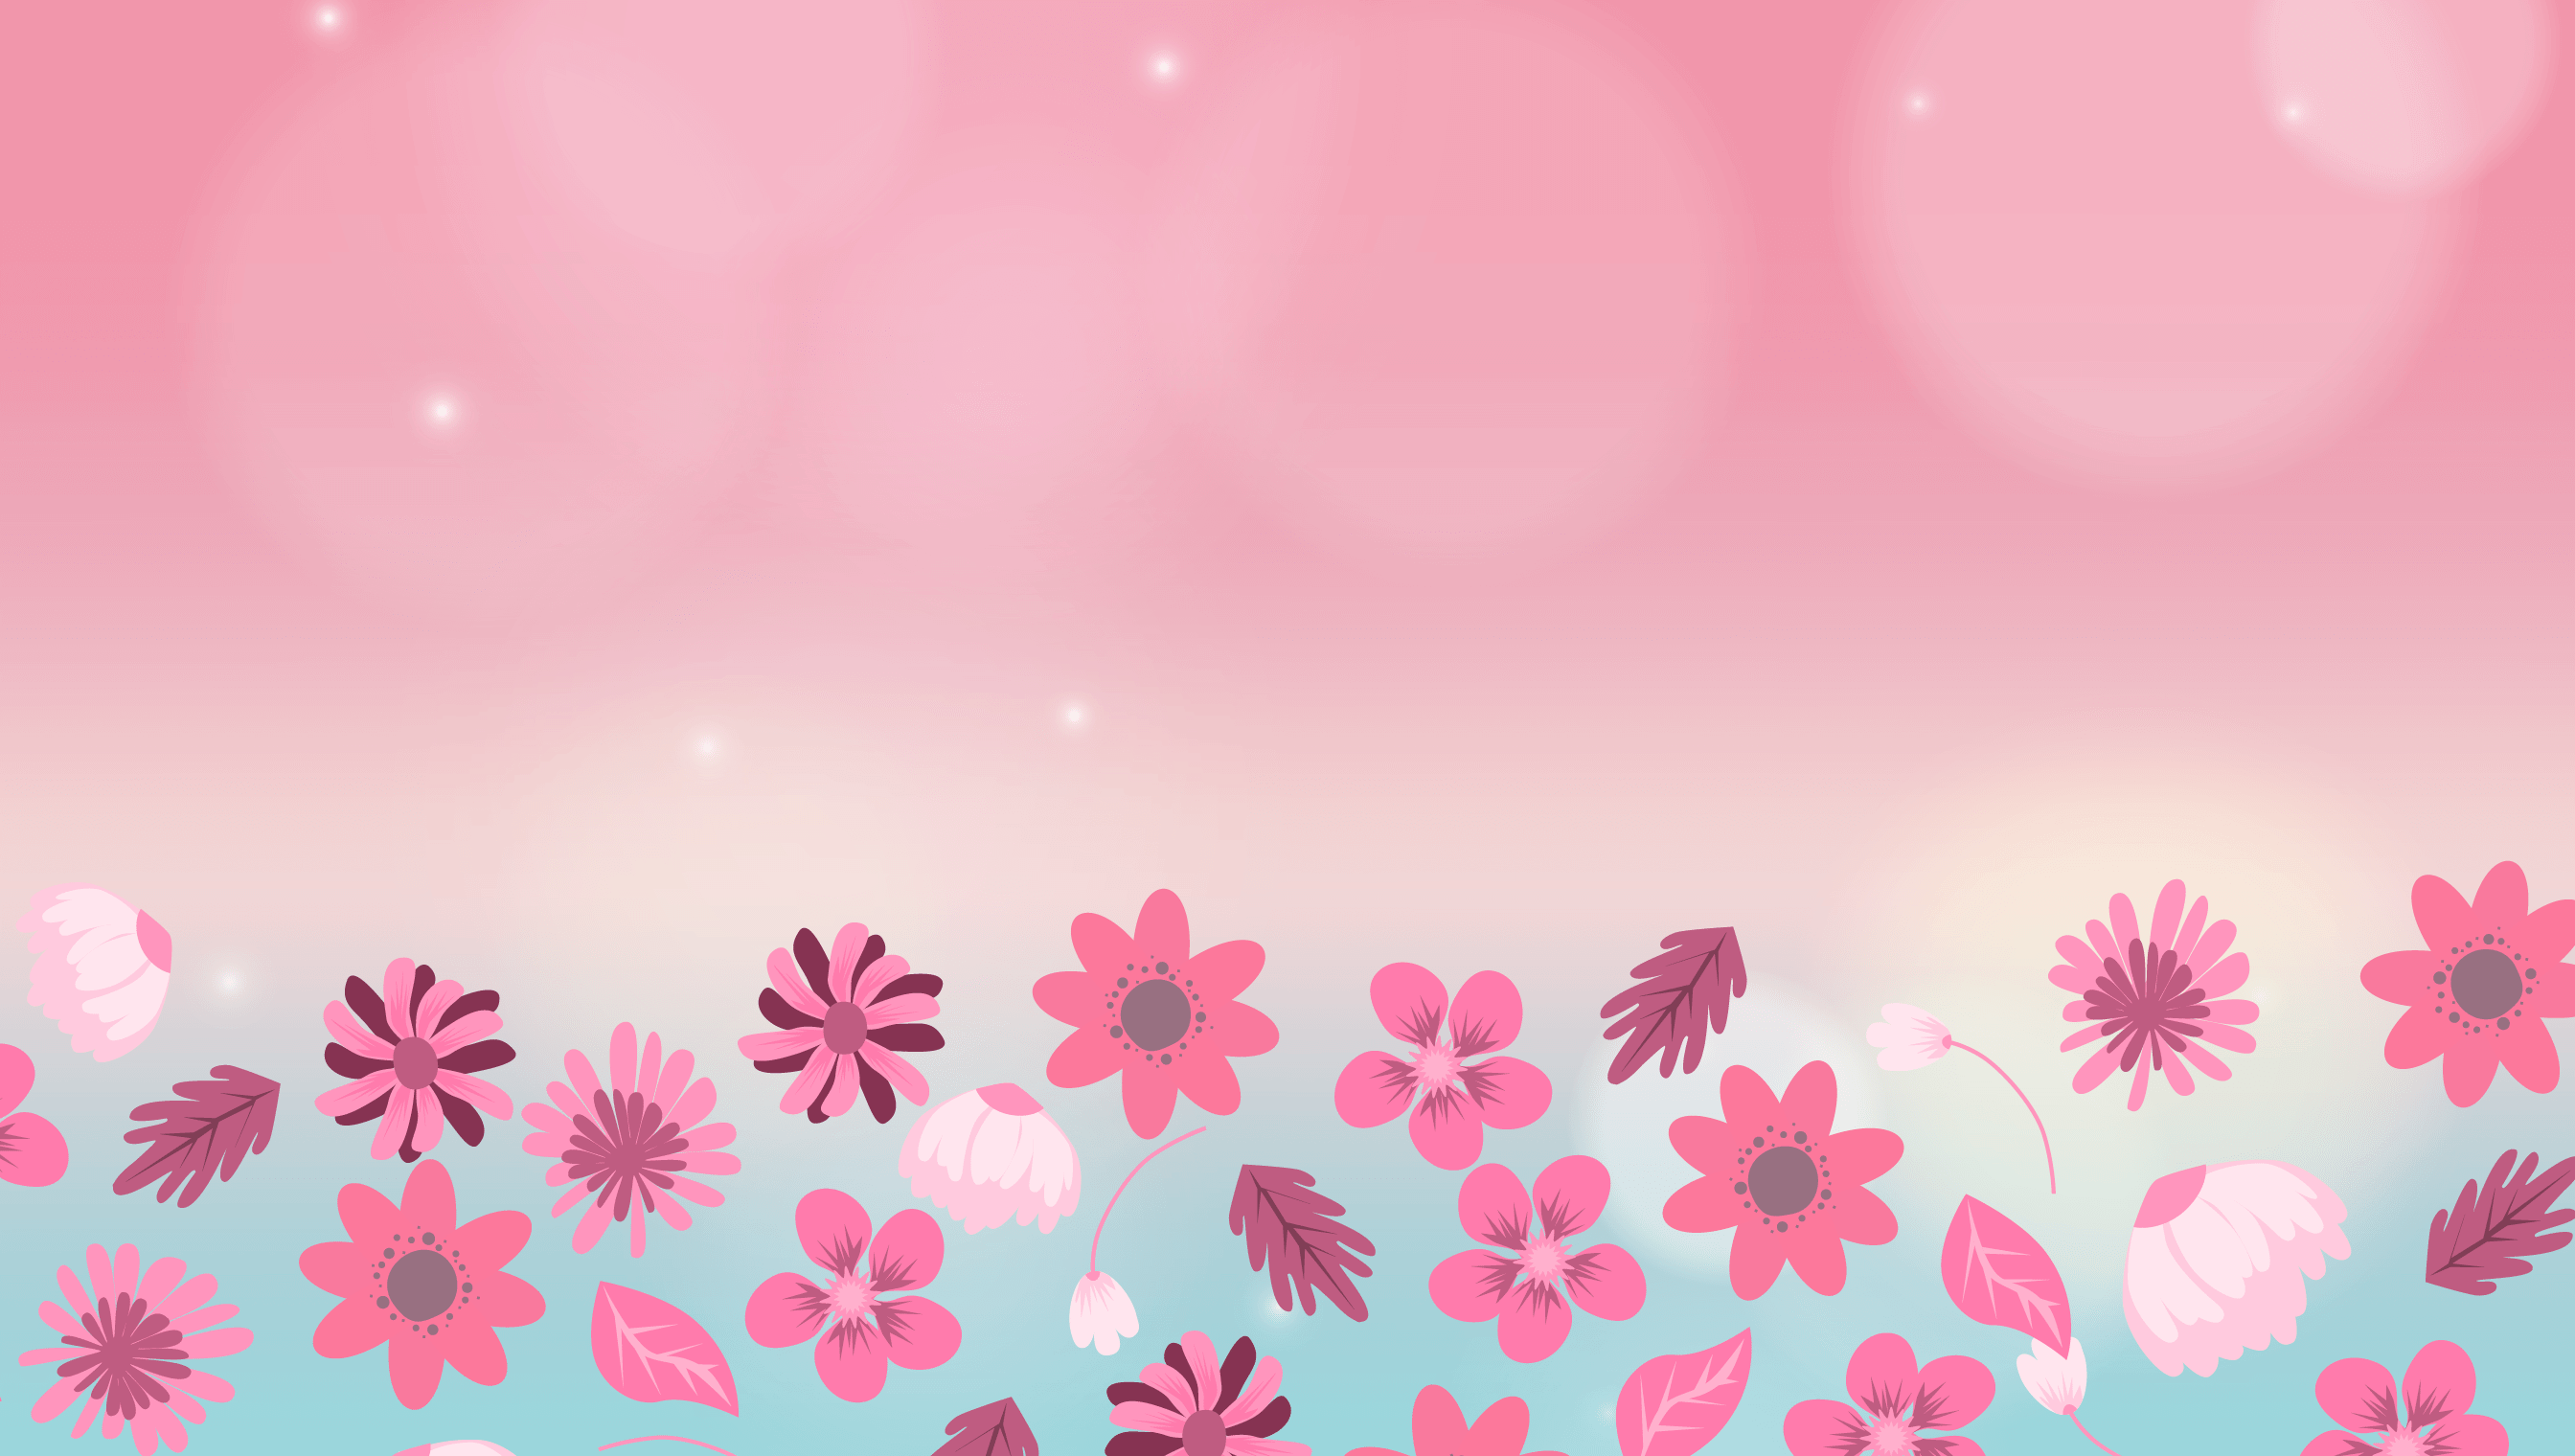 background scene - Mother's Day Background 2